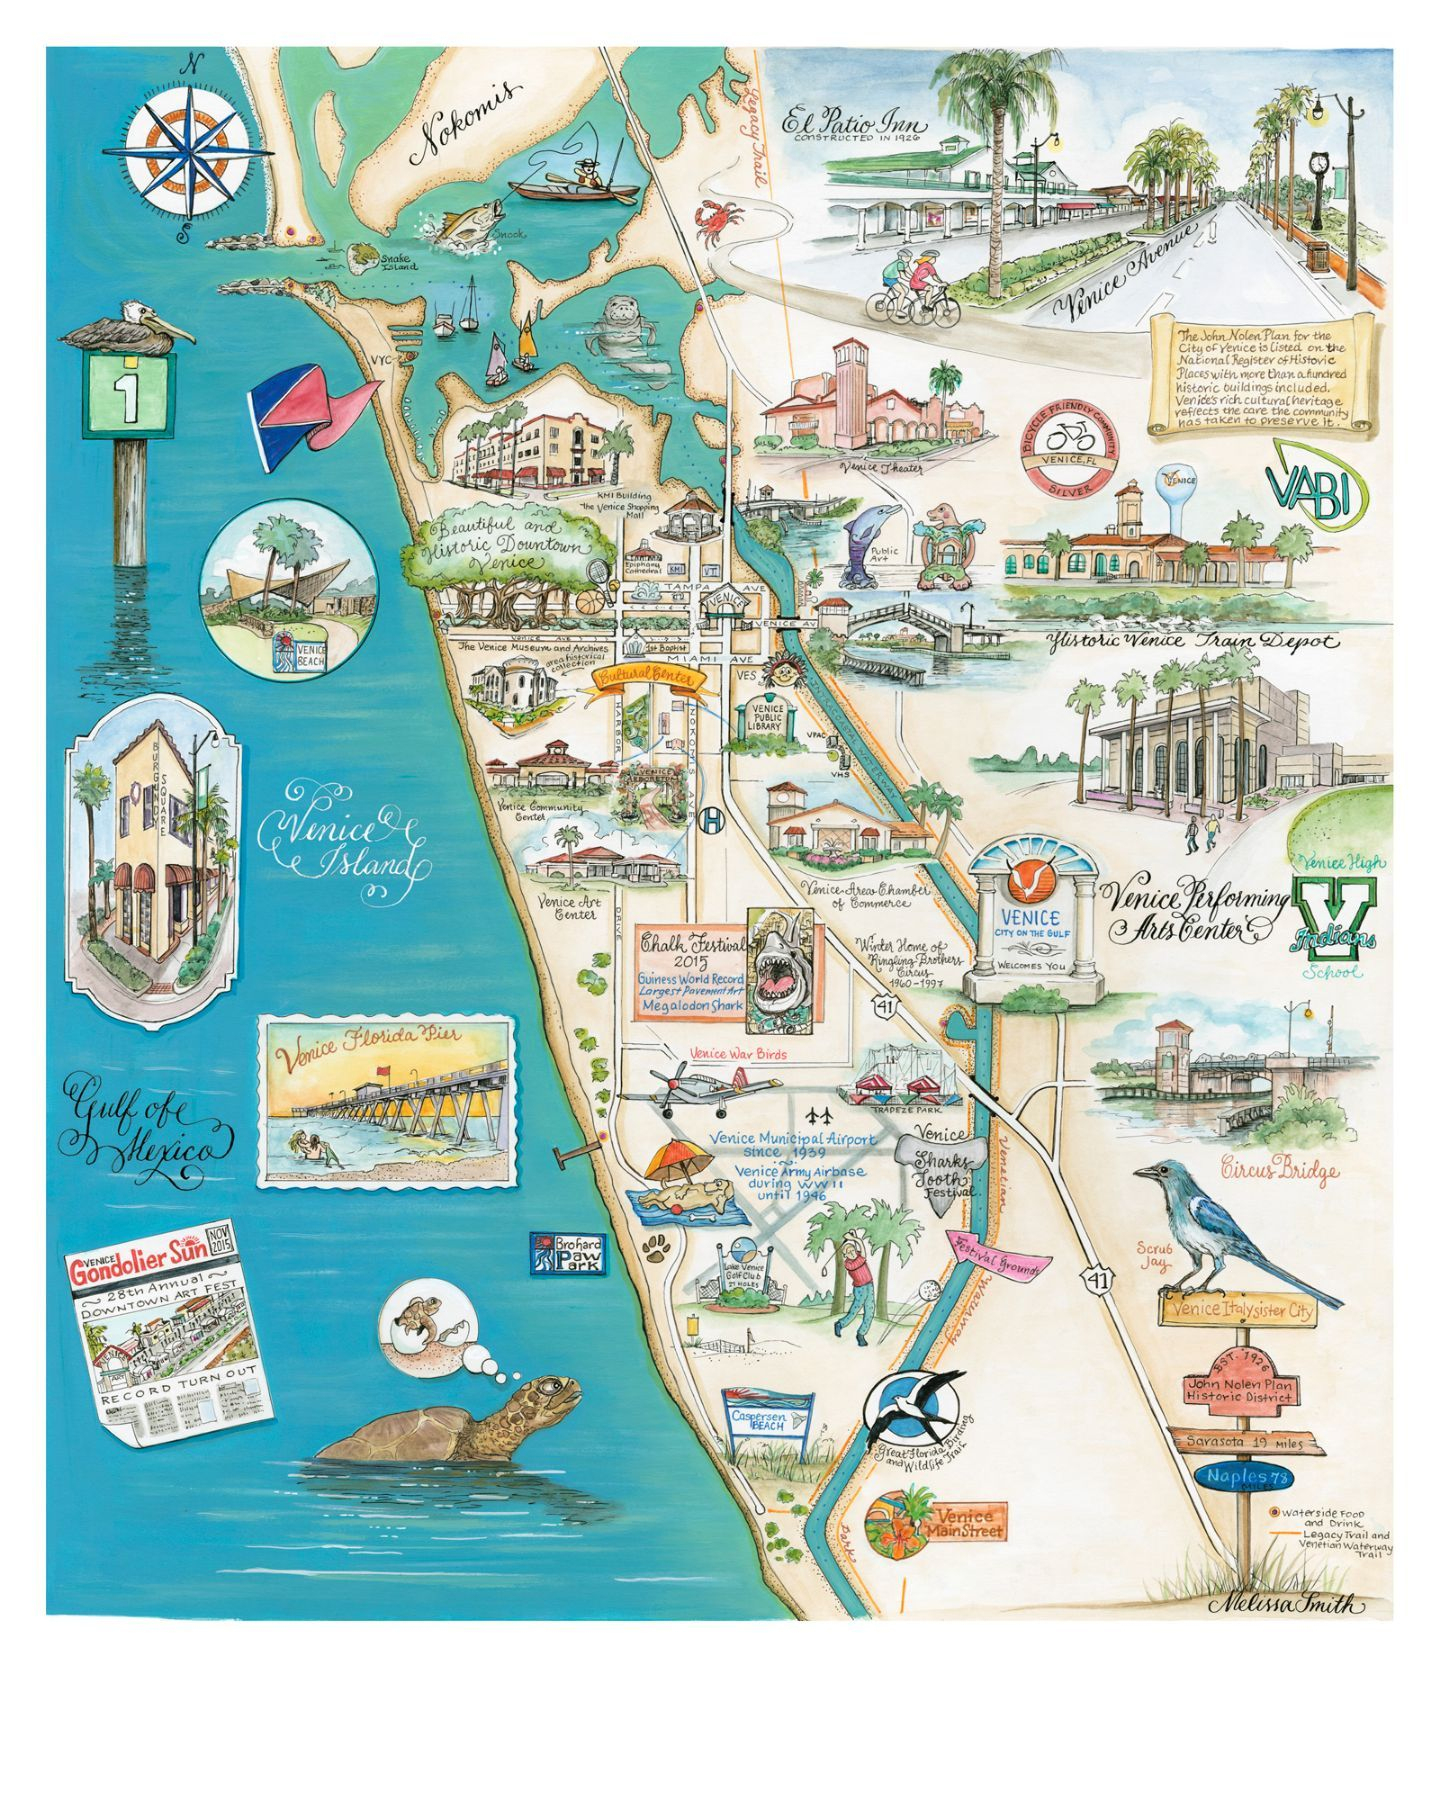 Venice, Florida Map - This Map Is One Of The Prettiest Maps I Have - Boating Maps Florida